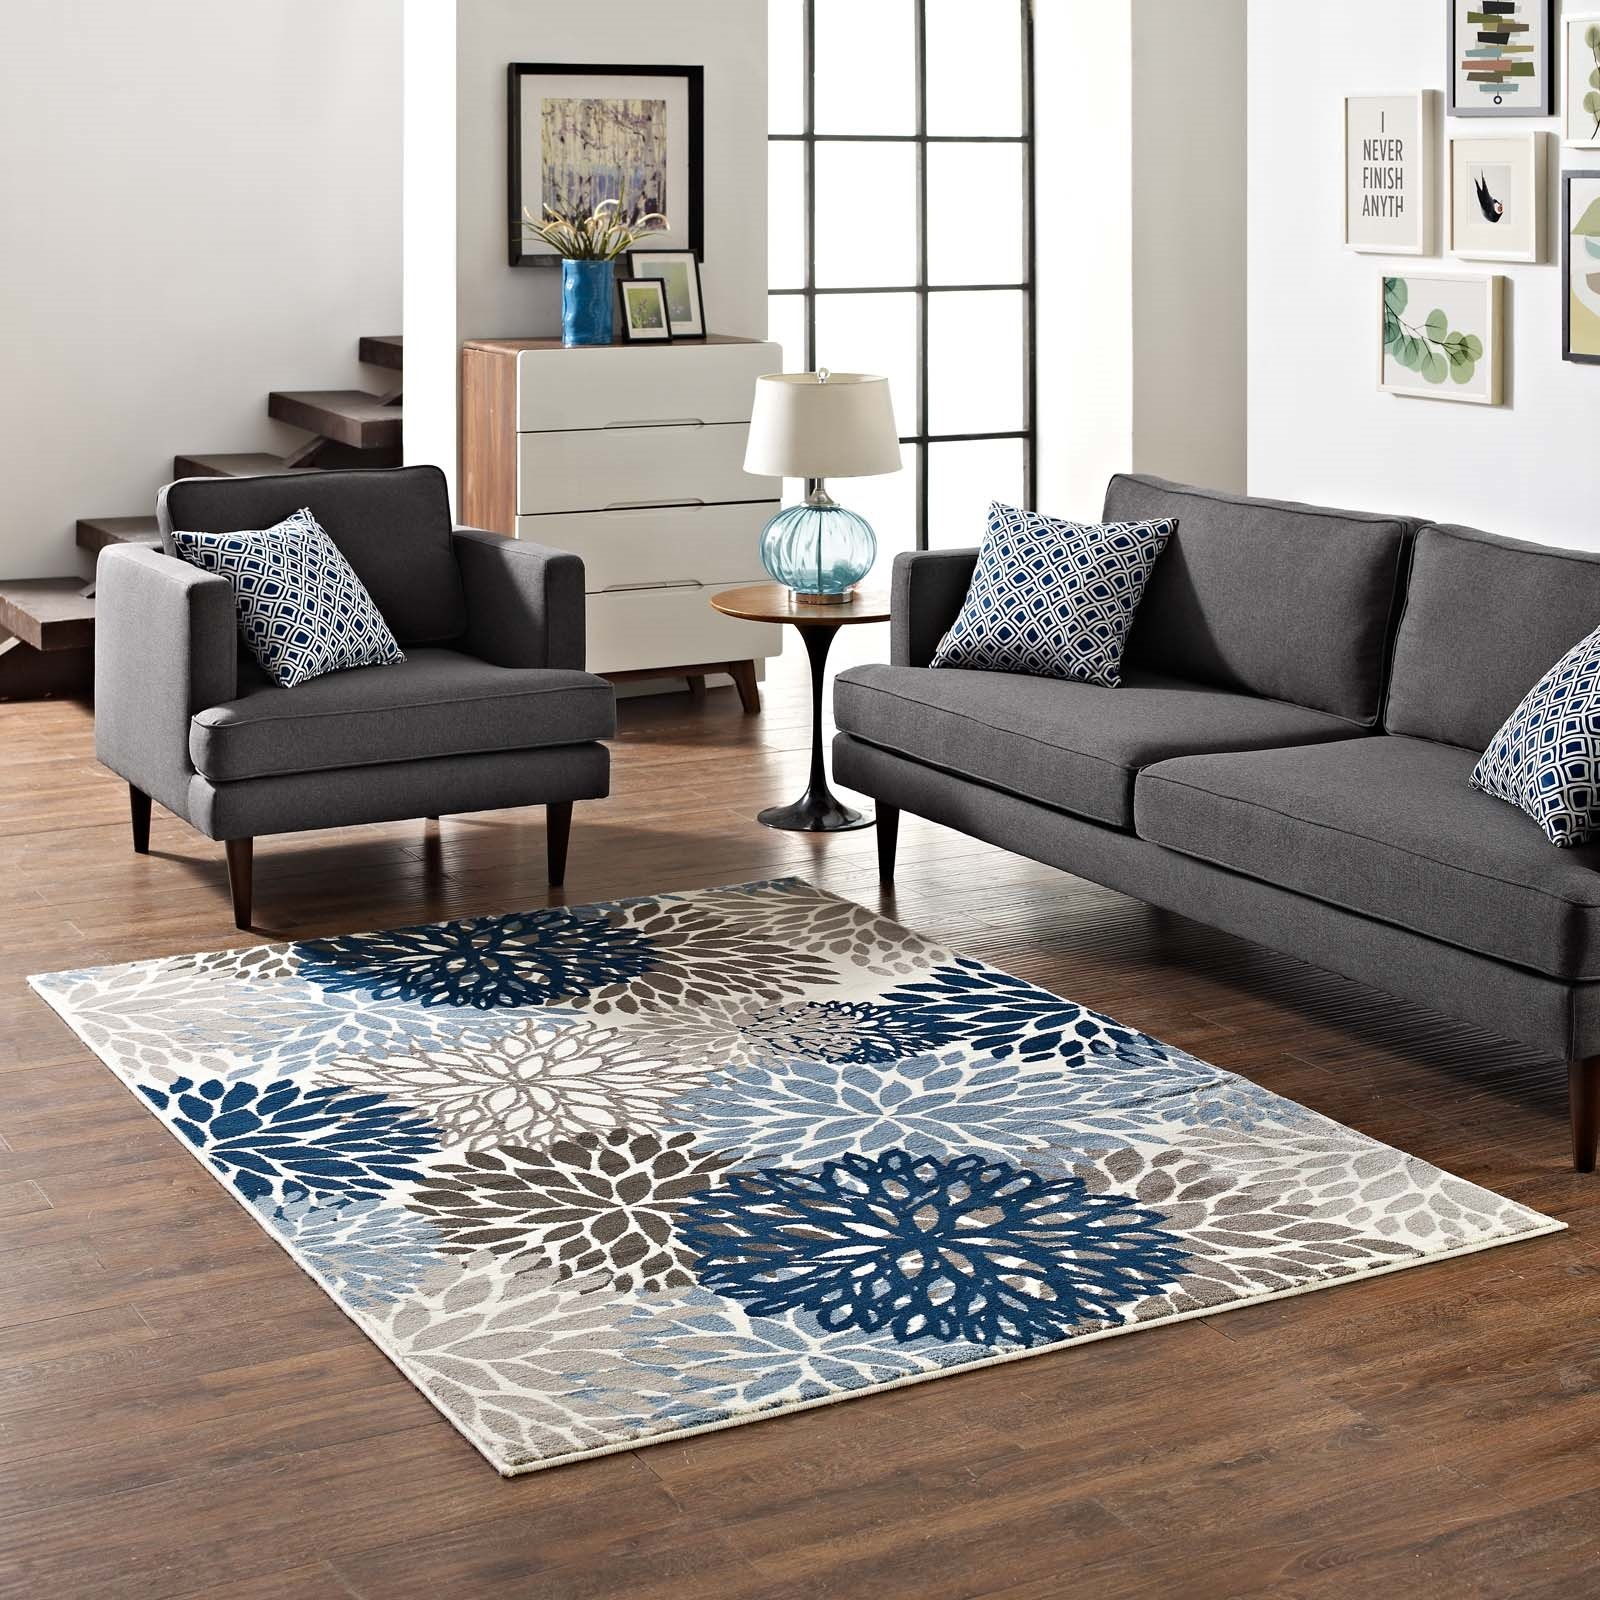 Calithea Vintage Classic Abstract Floral 5x8  Area Rug in Blue, Brown and Beige Product Image